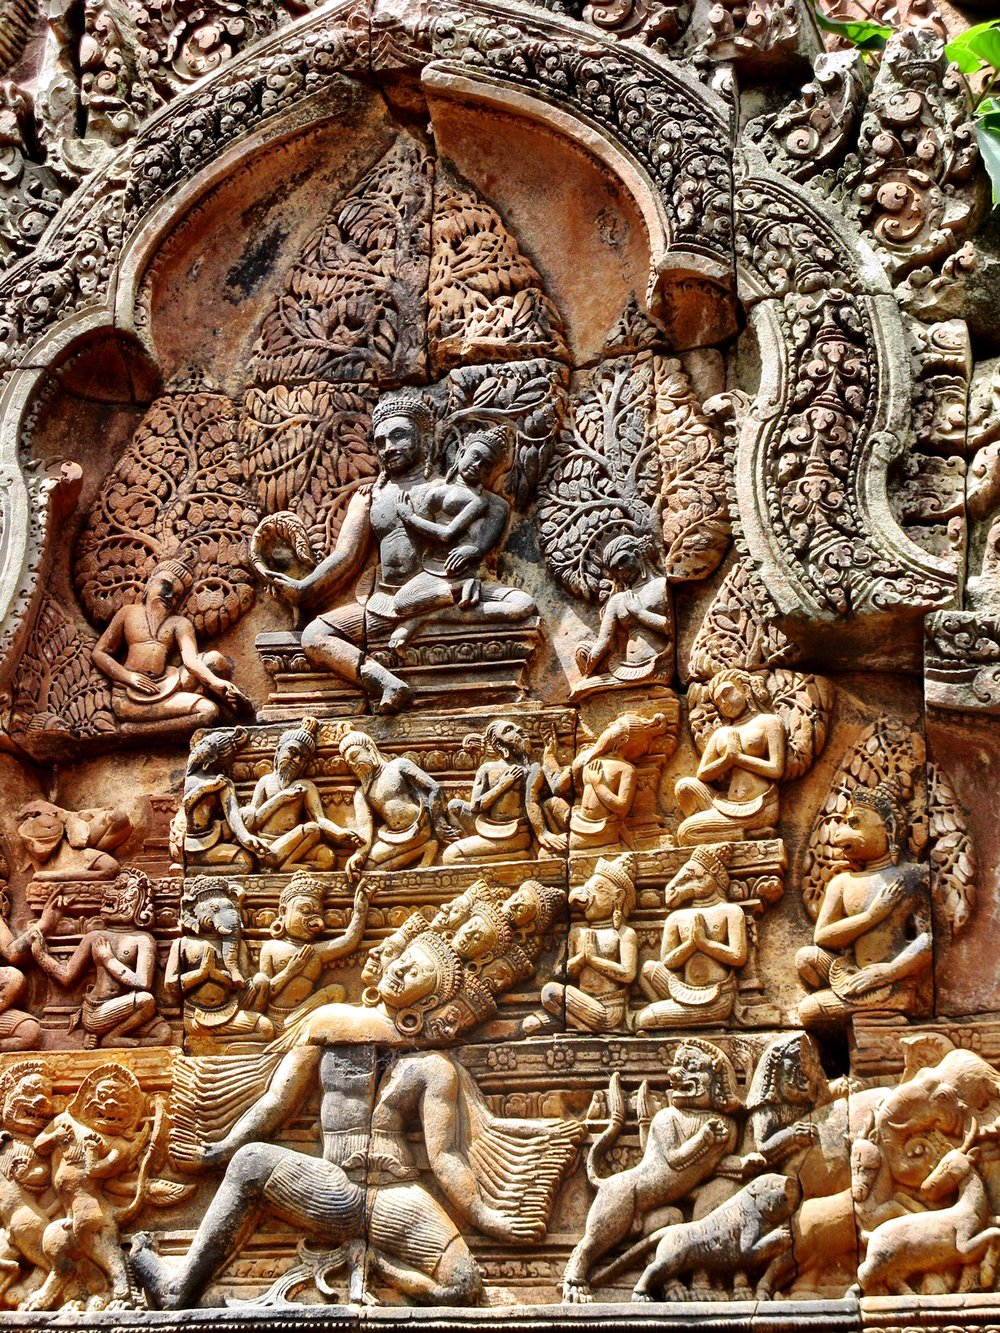 In this image, the demon king Ravana tries to lift Mount Kailash, where Lord Shiva is meditating, and bring it back to his own kingdom